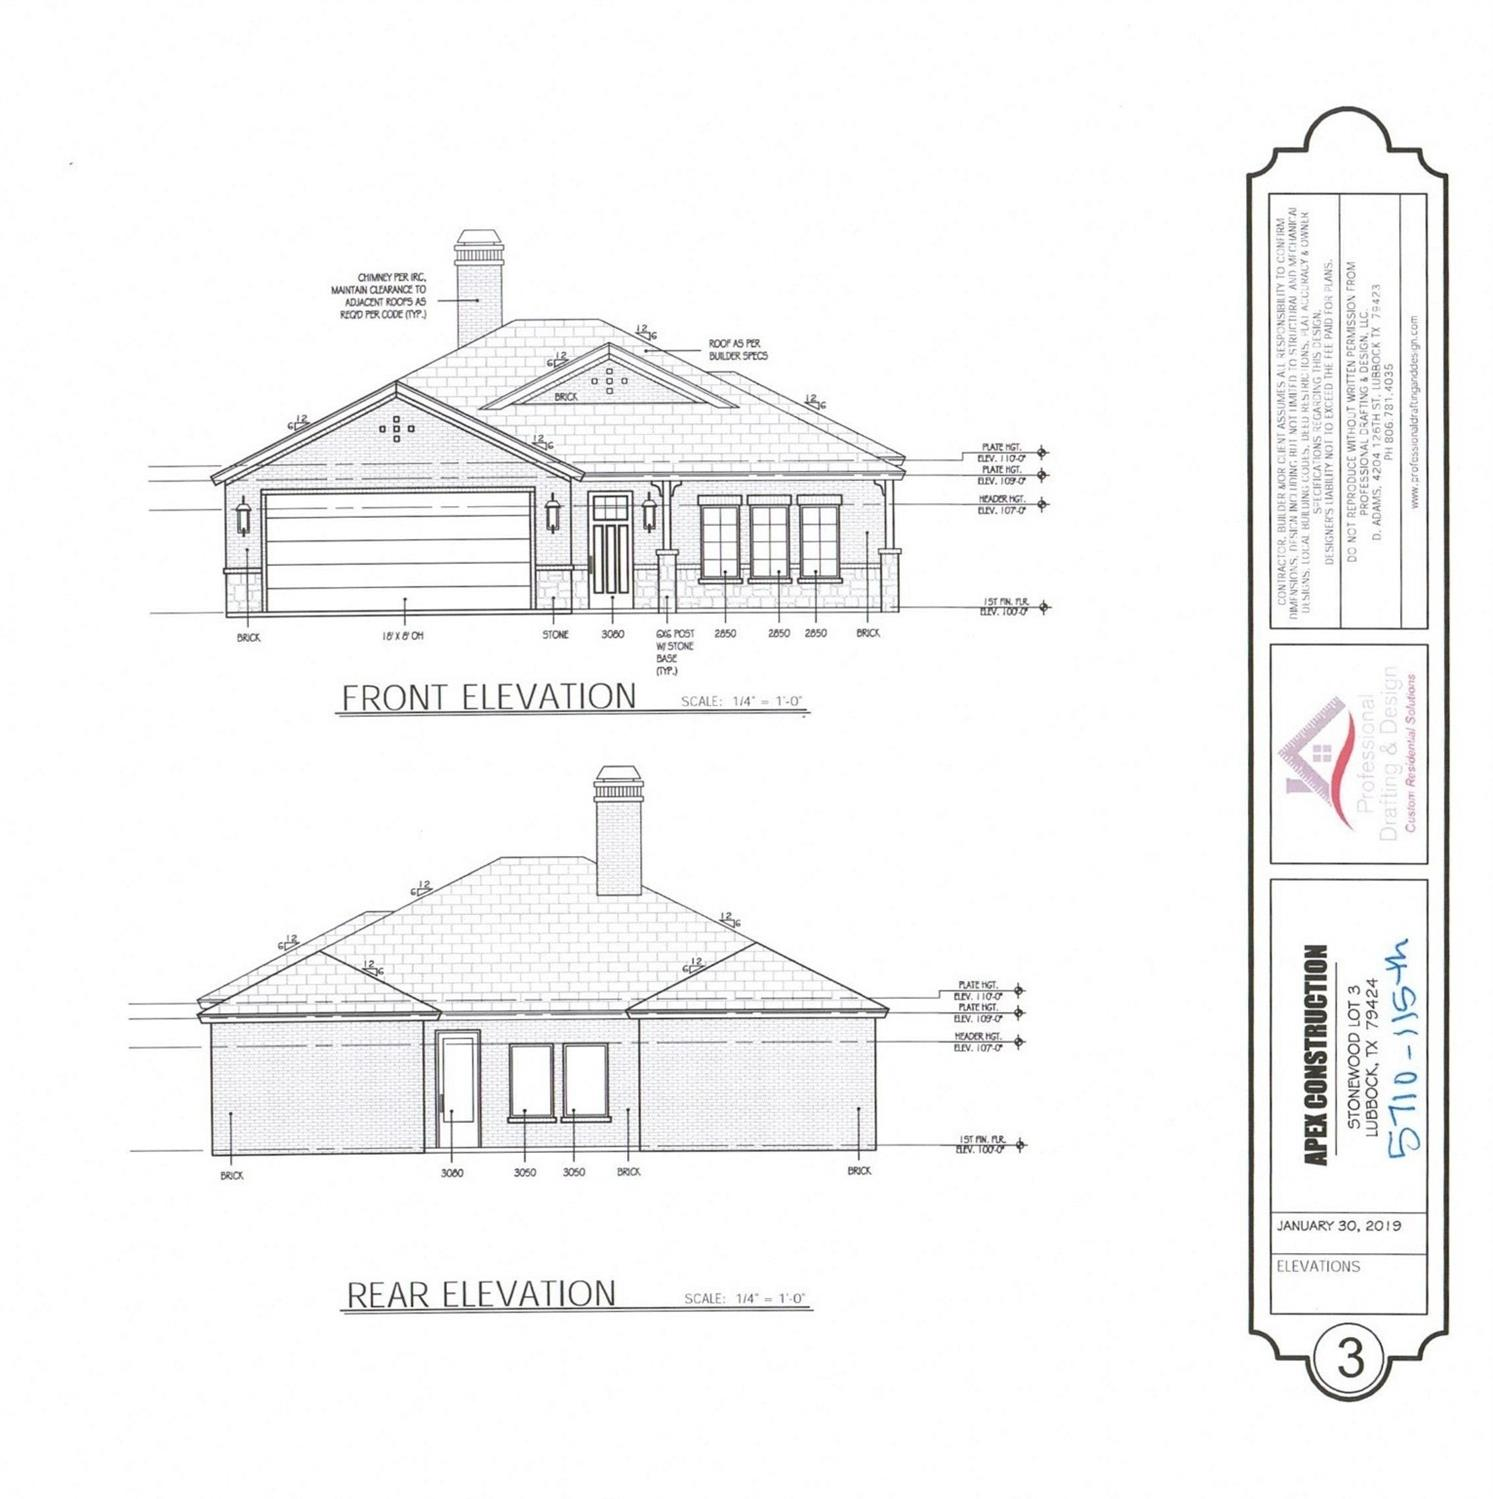 UNDER CONSTRUCTION - pick your finishes!  This 4 bedroom, 2 bath home in Stonewood being built by prestigious Apex Construction could be yours to personalize!  Estimated completion is set for February 2020.   Give us a call to see how you can have a hand in each step of the custom home building process!